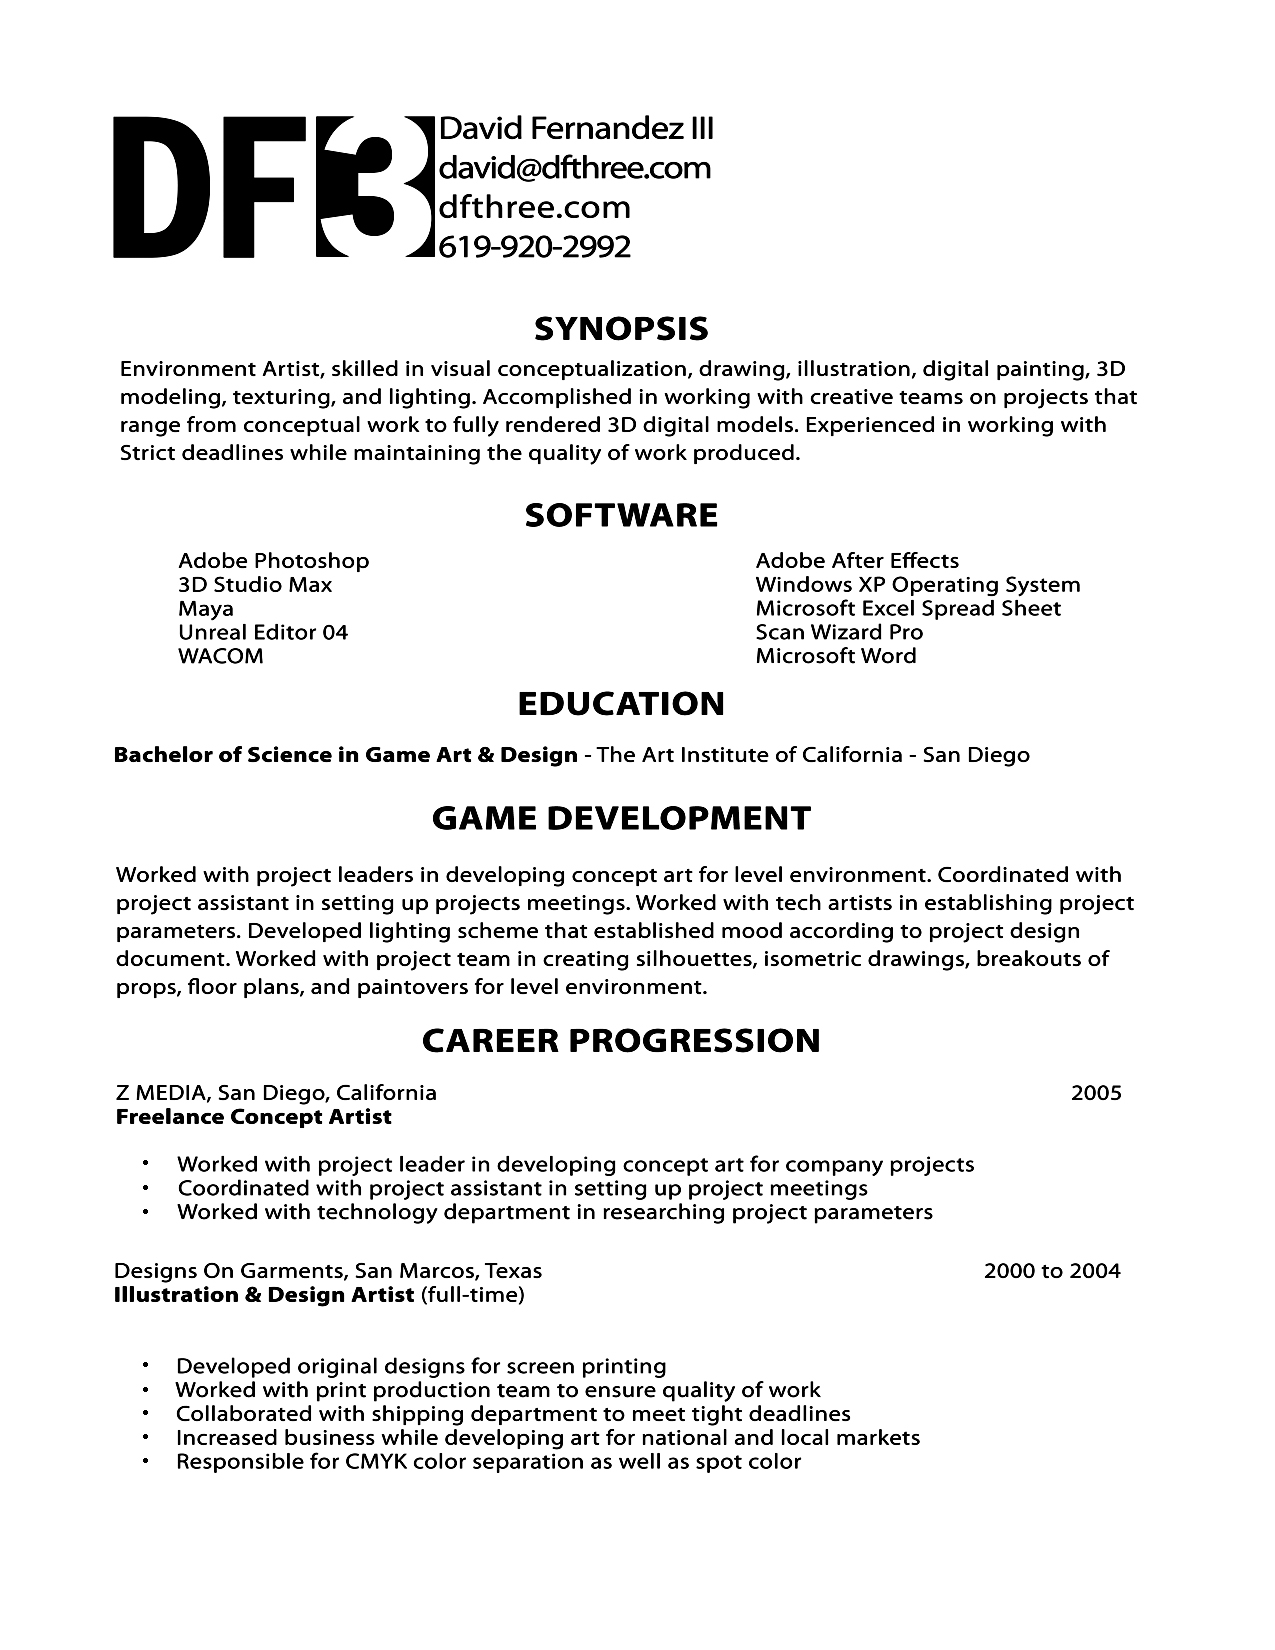 Opposenewapstandardsus  Winsome Game Developer Resume Game Tester Resume Sample Game Tester  With Foxy Better Jobs Faster With Cool Medical Student Resume Also Library Assistant Resume In Addition Chef Resume Template And How To Update Resume As Well As Microsoft Office Resume Additionally Procurement Resume From Kelseymarieco With Opposenewapstandardsus  Foxy Game Developer Resume Game Tester Resume Sample Game Tester  With Cool Better Jobs Faster And Winsome Medical Student Resume Also Library Assistant Resume In Addition Chef Resume Template From Kelseymarieco